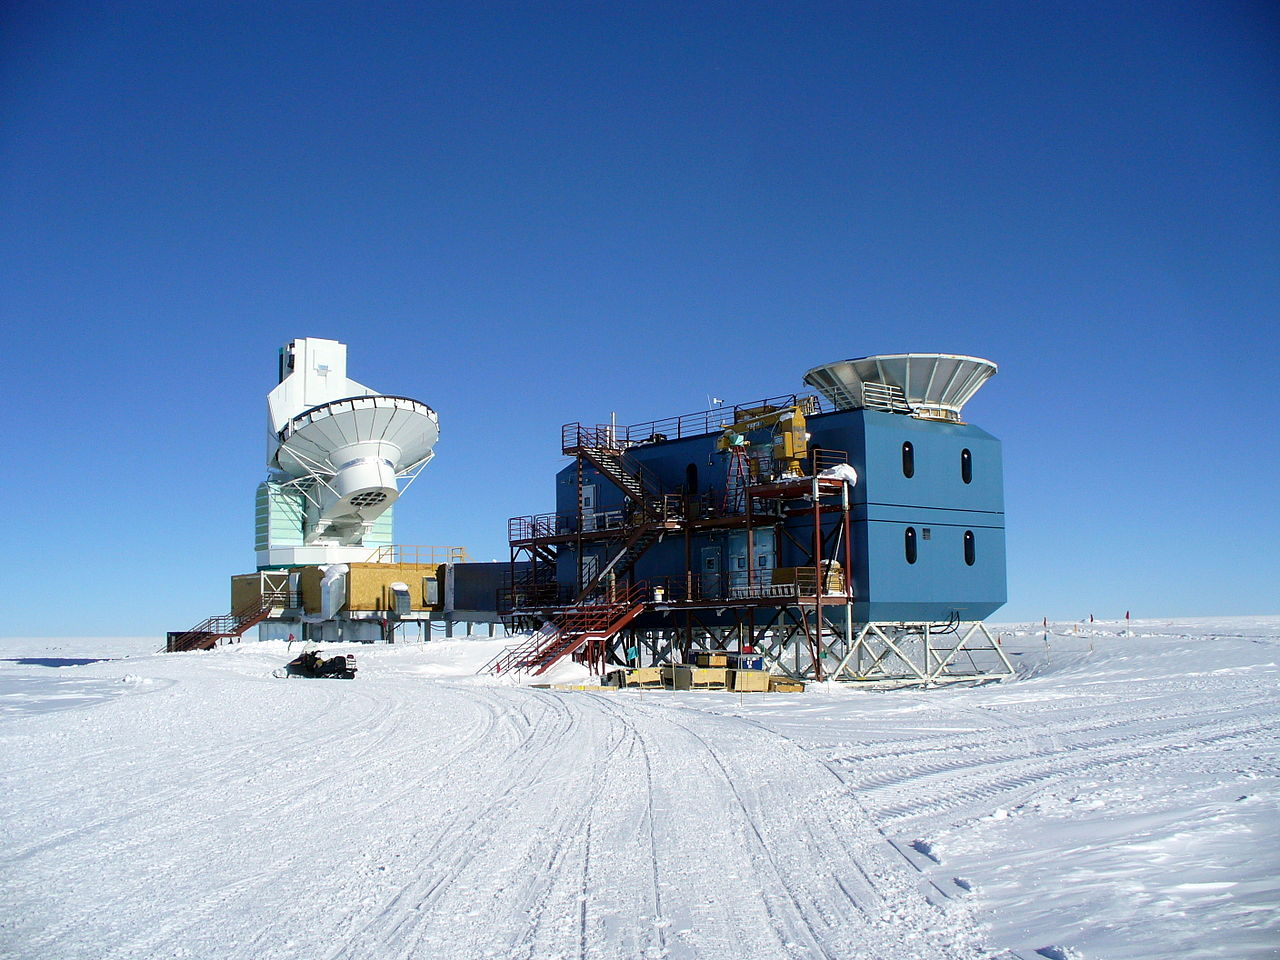 BICEP2 telescope (left), Photo Credit: Wikimedia Commons user Amble, CC BY-SA 3.0